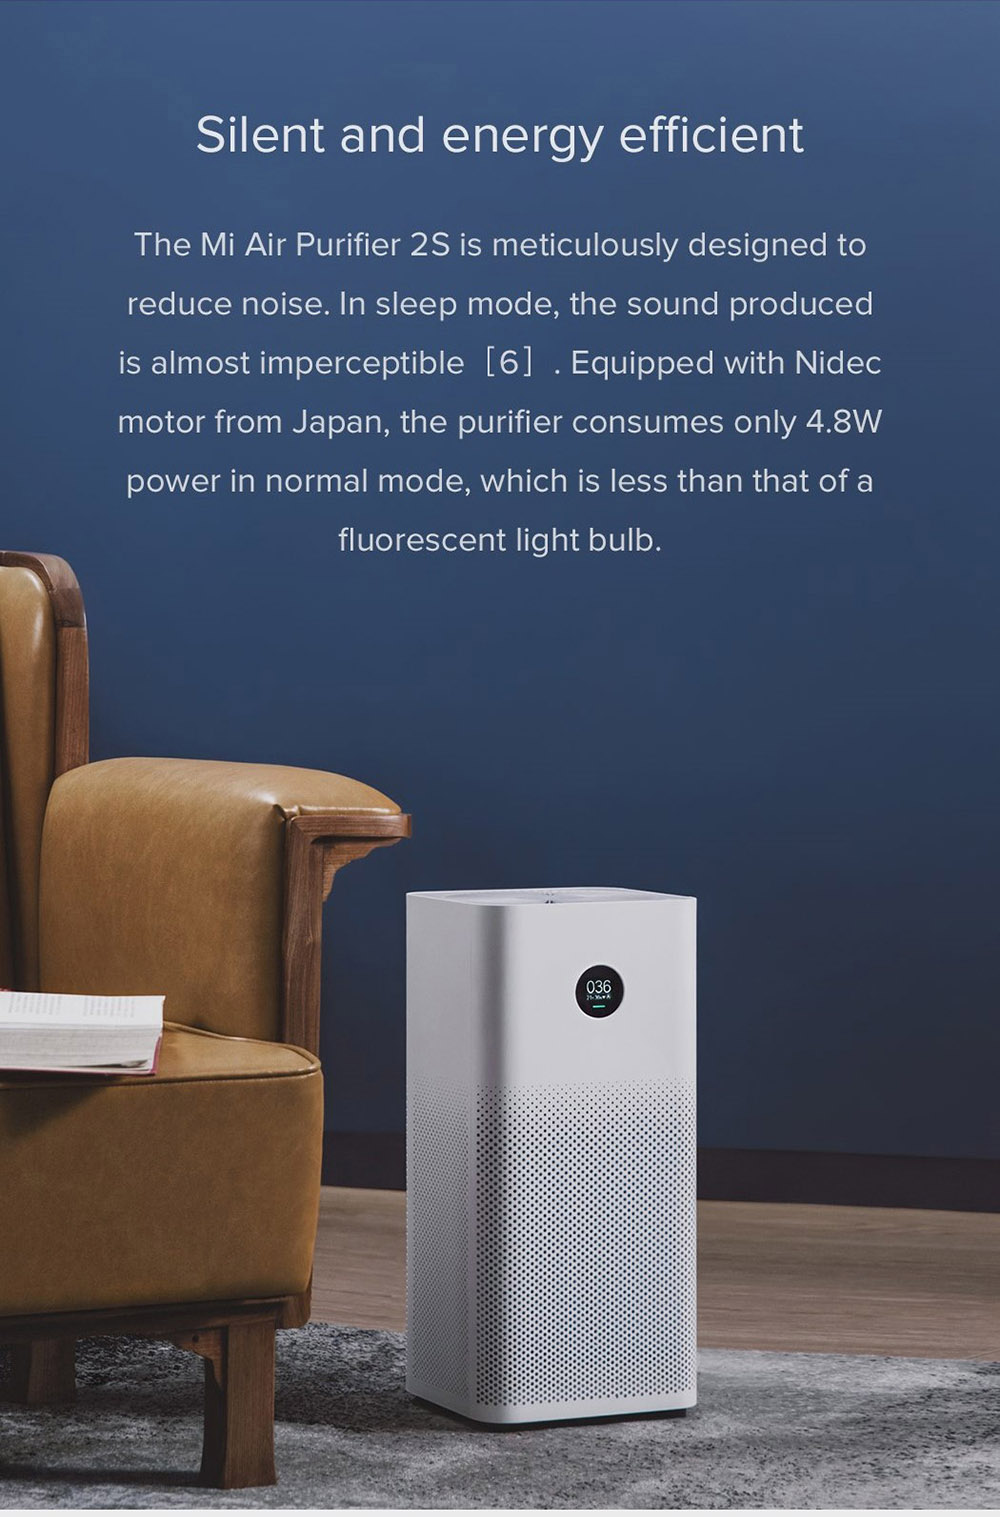 Xiaomi Mi Air Purifier 2S OLED Display Air Quality PM 2.5 Monitor 10min Circulation 360 Degree Ventilate Global Version - White